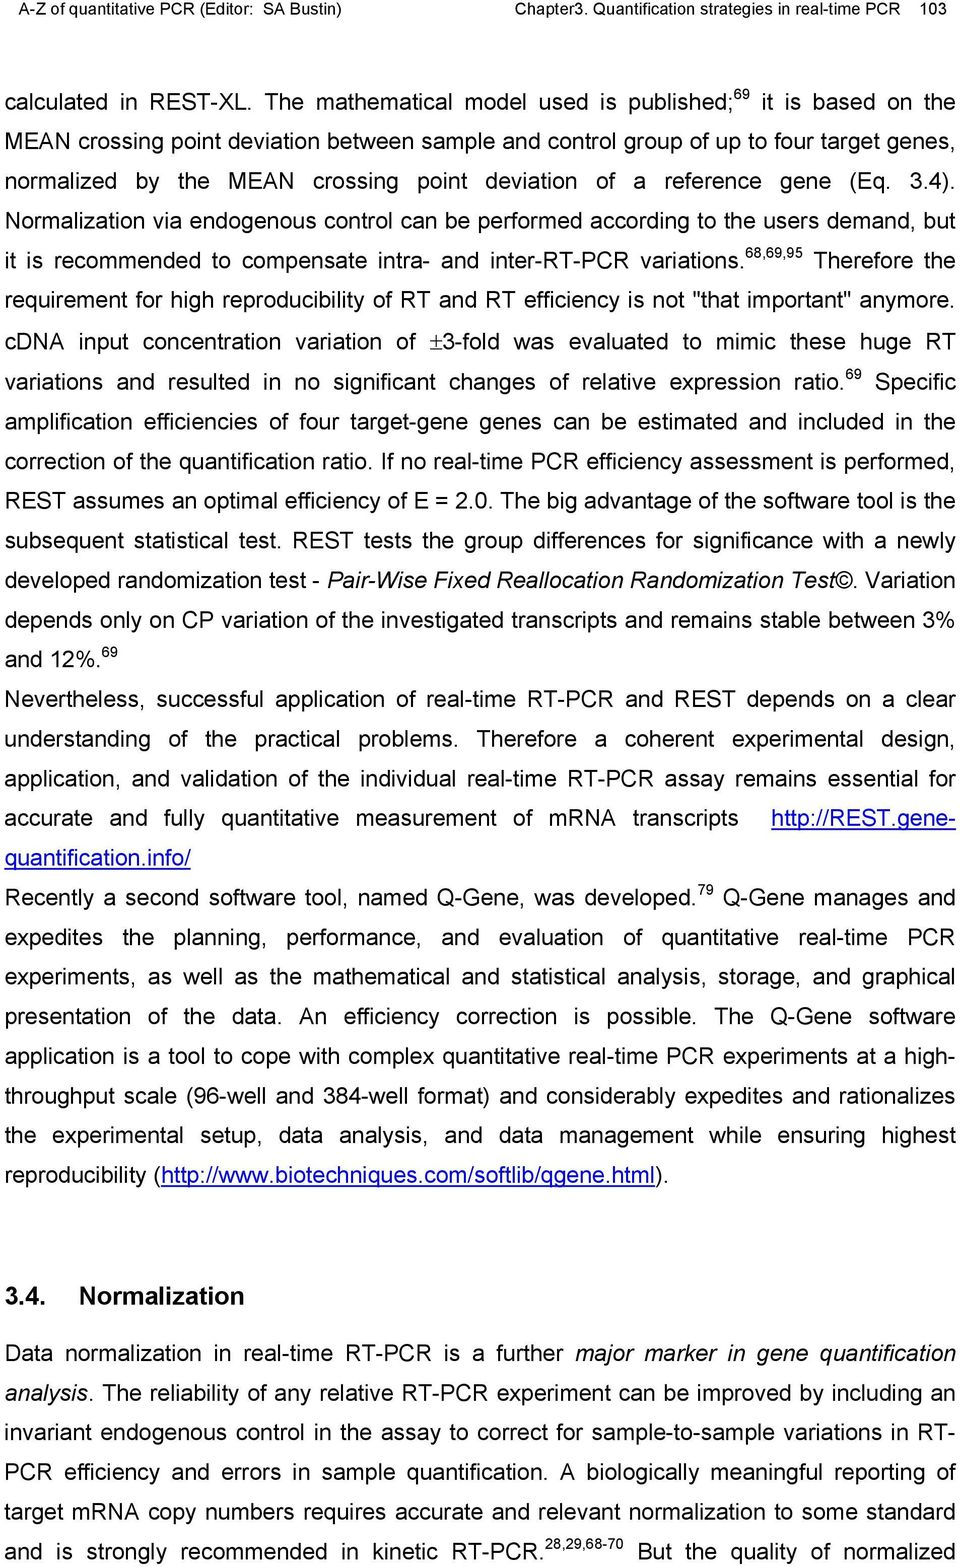 deviation of a reference gene (Eq. 3.4). Normalization via endogenous control can be performed according to the users demand, but it is recommended to compensate intra- and inter-rt-pcr variations.